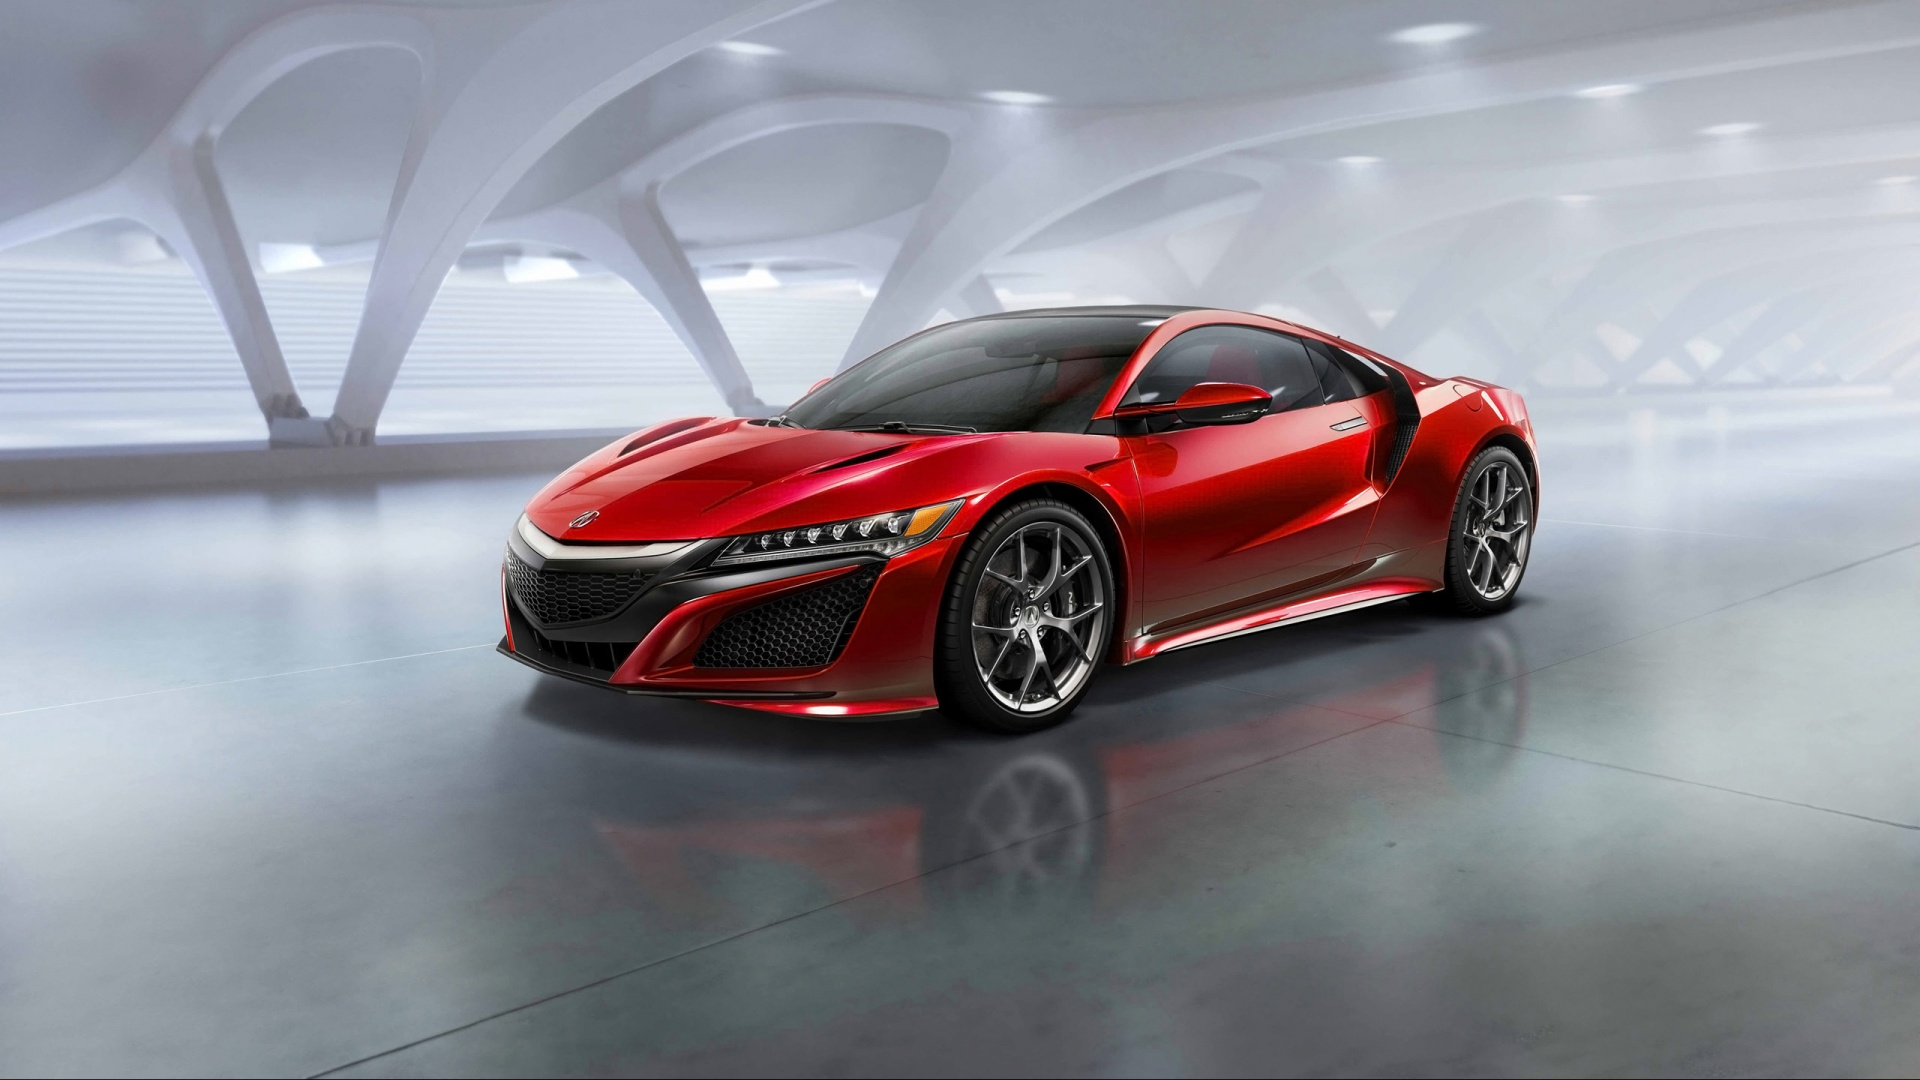 acura nsx 2015 wallpapers hd A7